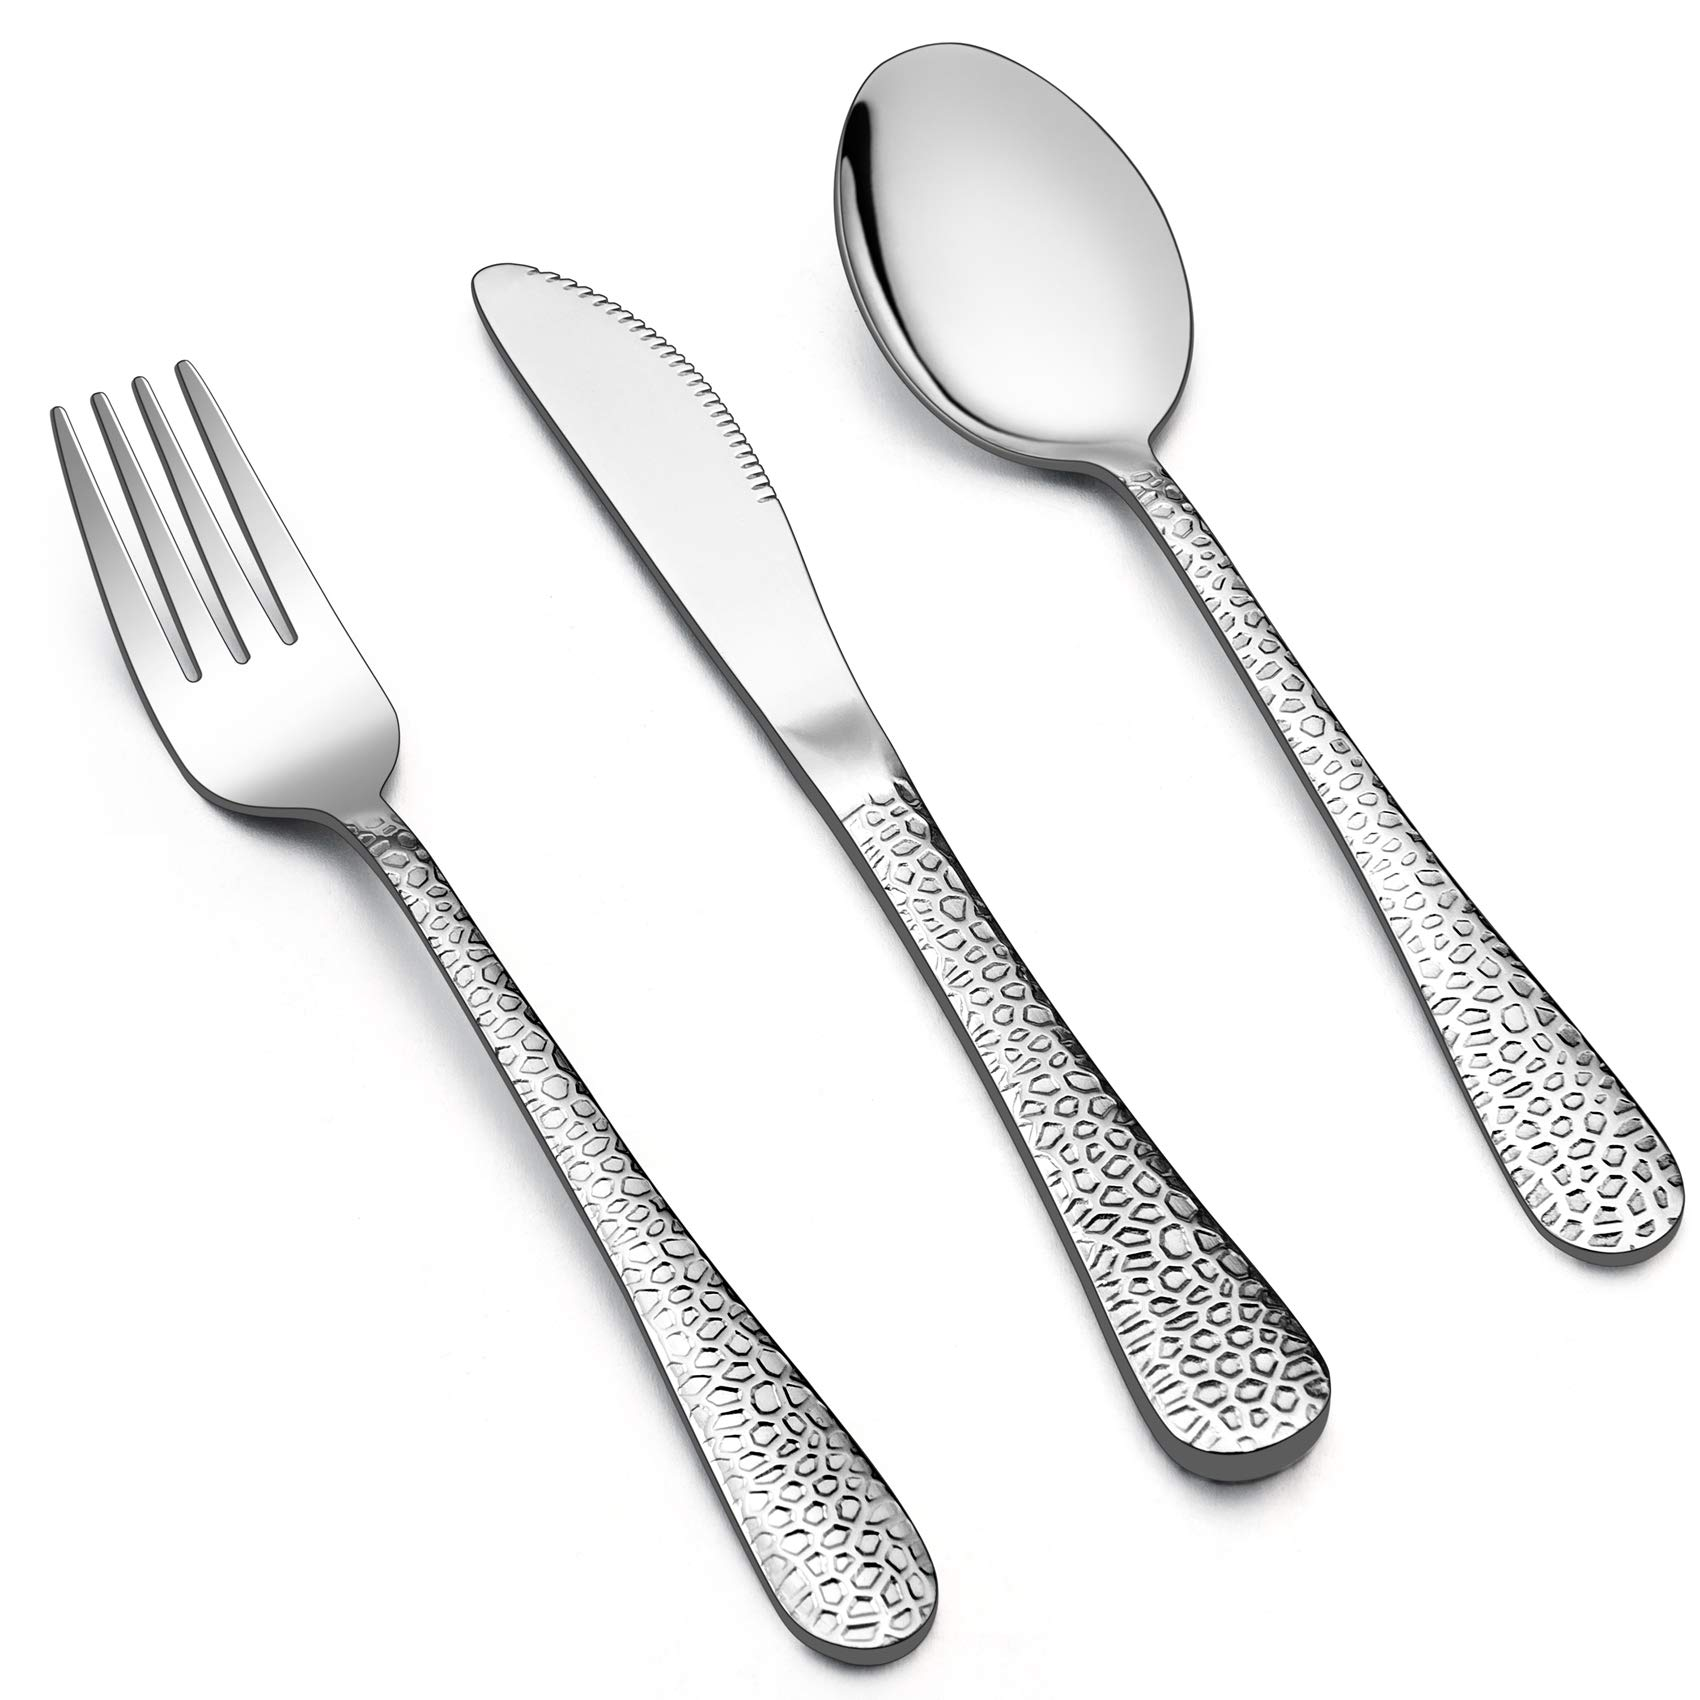 LIANYU 12-Piece Kids Utensils Silverware Set, Stainless Steel Toddler Hammered Flatware Cutlery, Children Tableware Includes Knives Forks Spoons, Dishwasher Safe by LIANYU